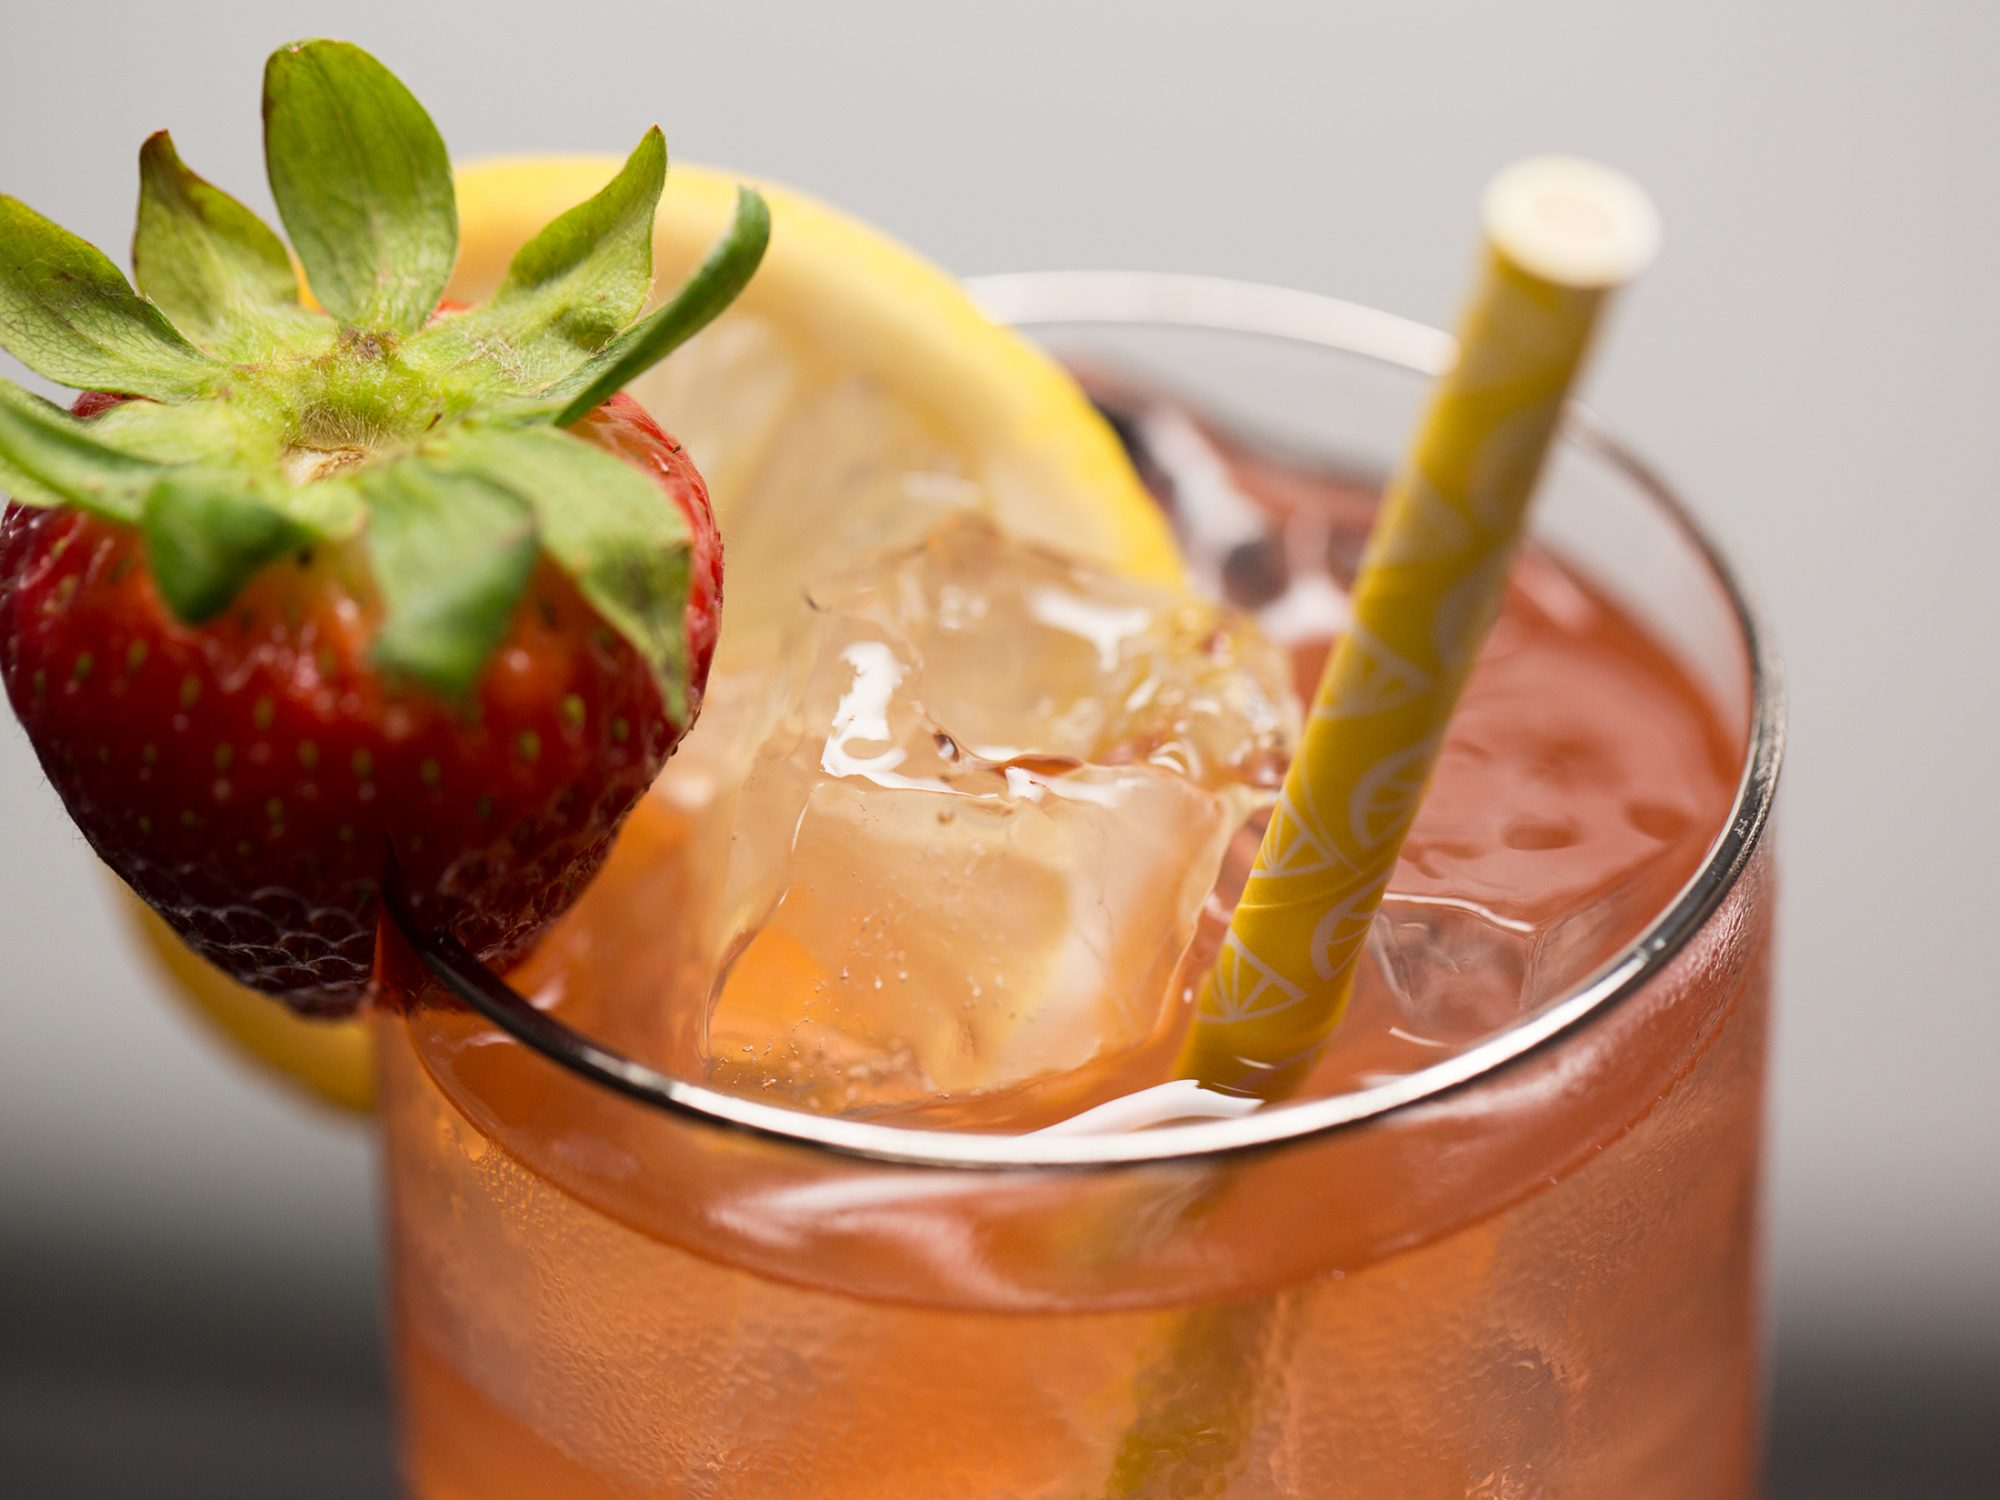 Skinny Strawberry Vodka Lemonade image